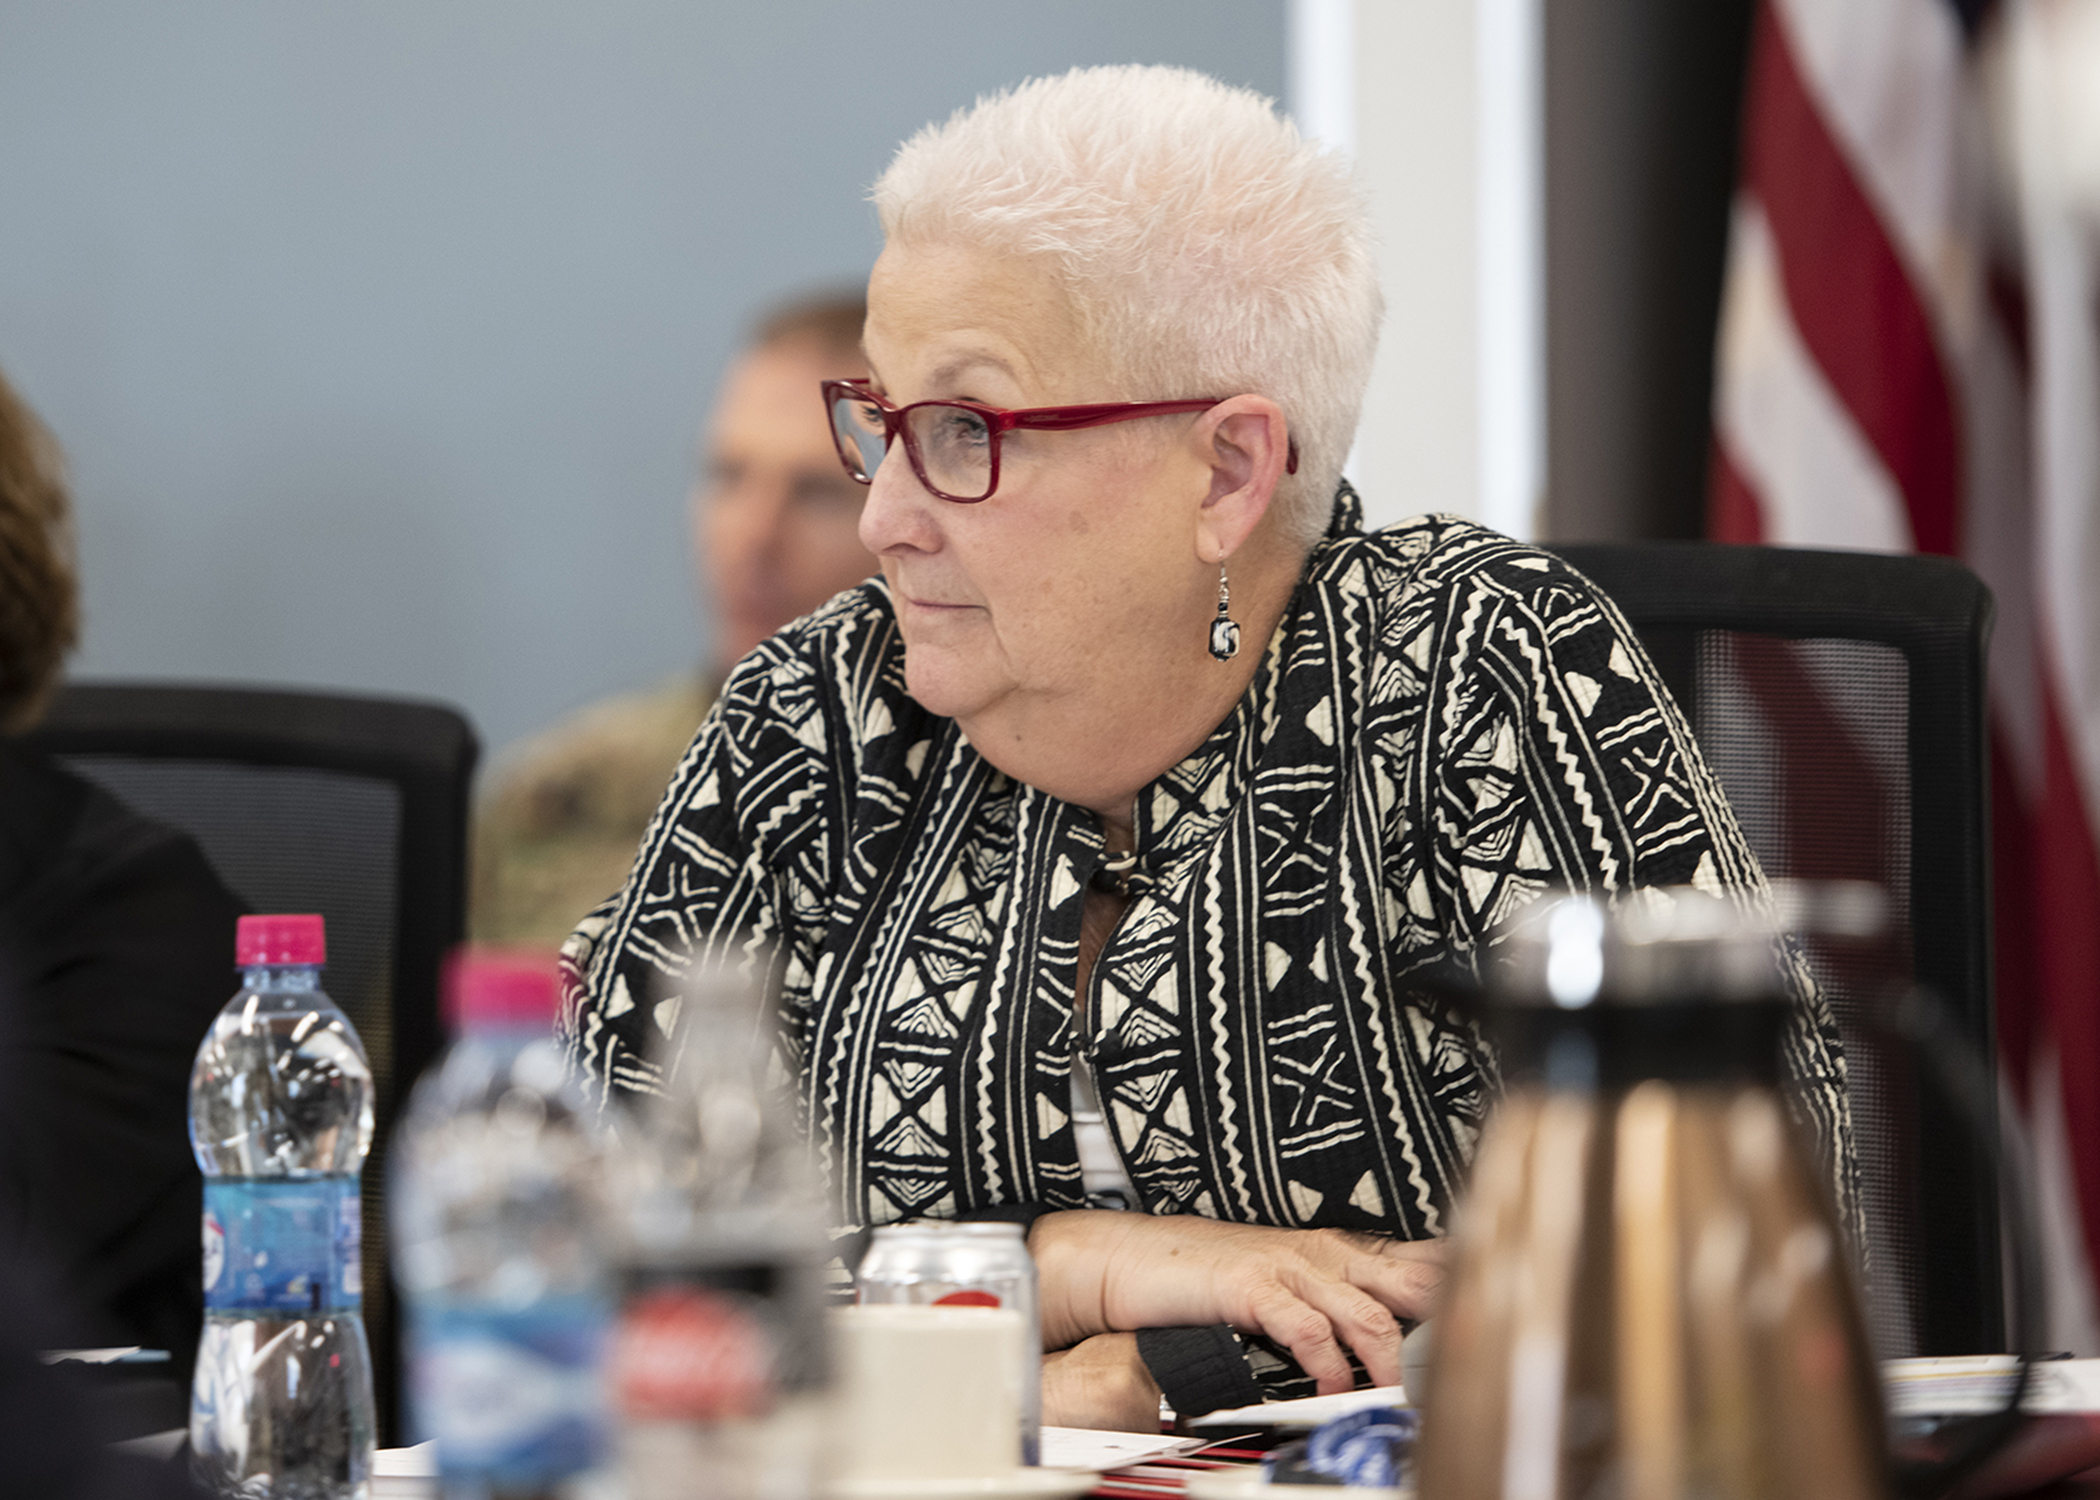 "Amb. Deborah Malac, U.S. Ambassador to Uganda, listens to a briefing titled ""Triggers of Regional Instability"" during the Combined Joint Task Force-Horn of Africa (CJTF-HOA) East Africa Security Forum (EASF) at Camp Lemonnier, Djibouti, Dec. 11, 2018. The EASF is an annual opportunity for CJTF-HOA and interagency leaders to sync, assess and align efforts to develop synchronized courses of action that support common goals. (U.S. Air Force photo by Tech. Sgt. Shawn Nickel)"